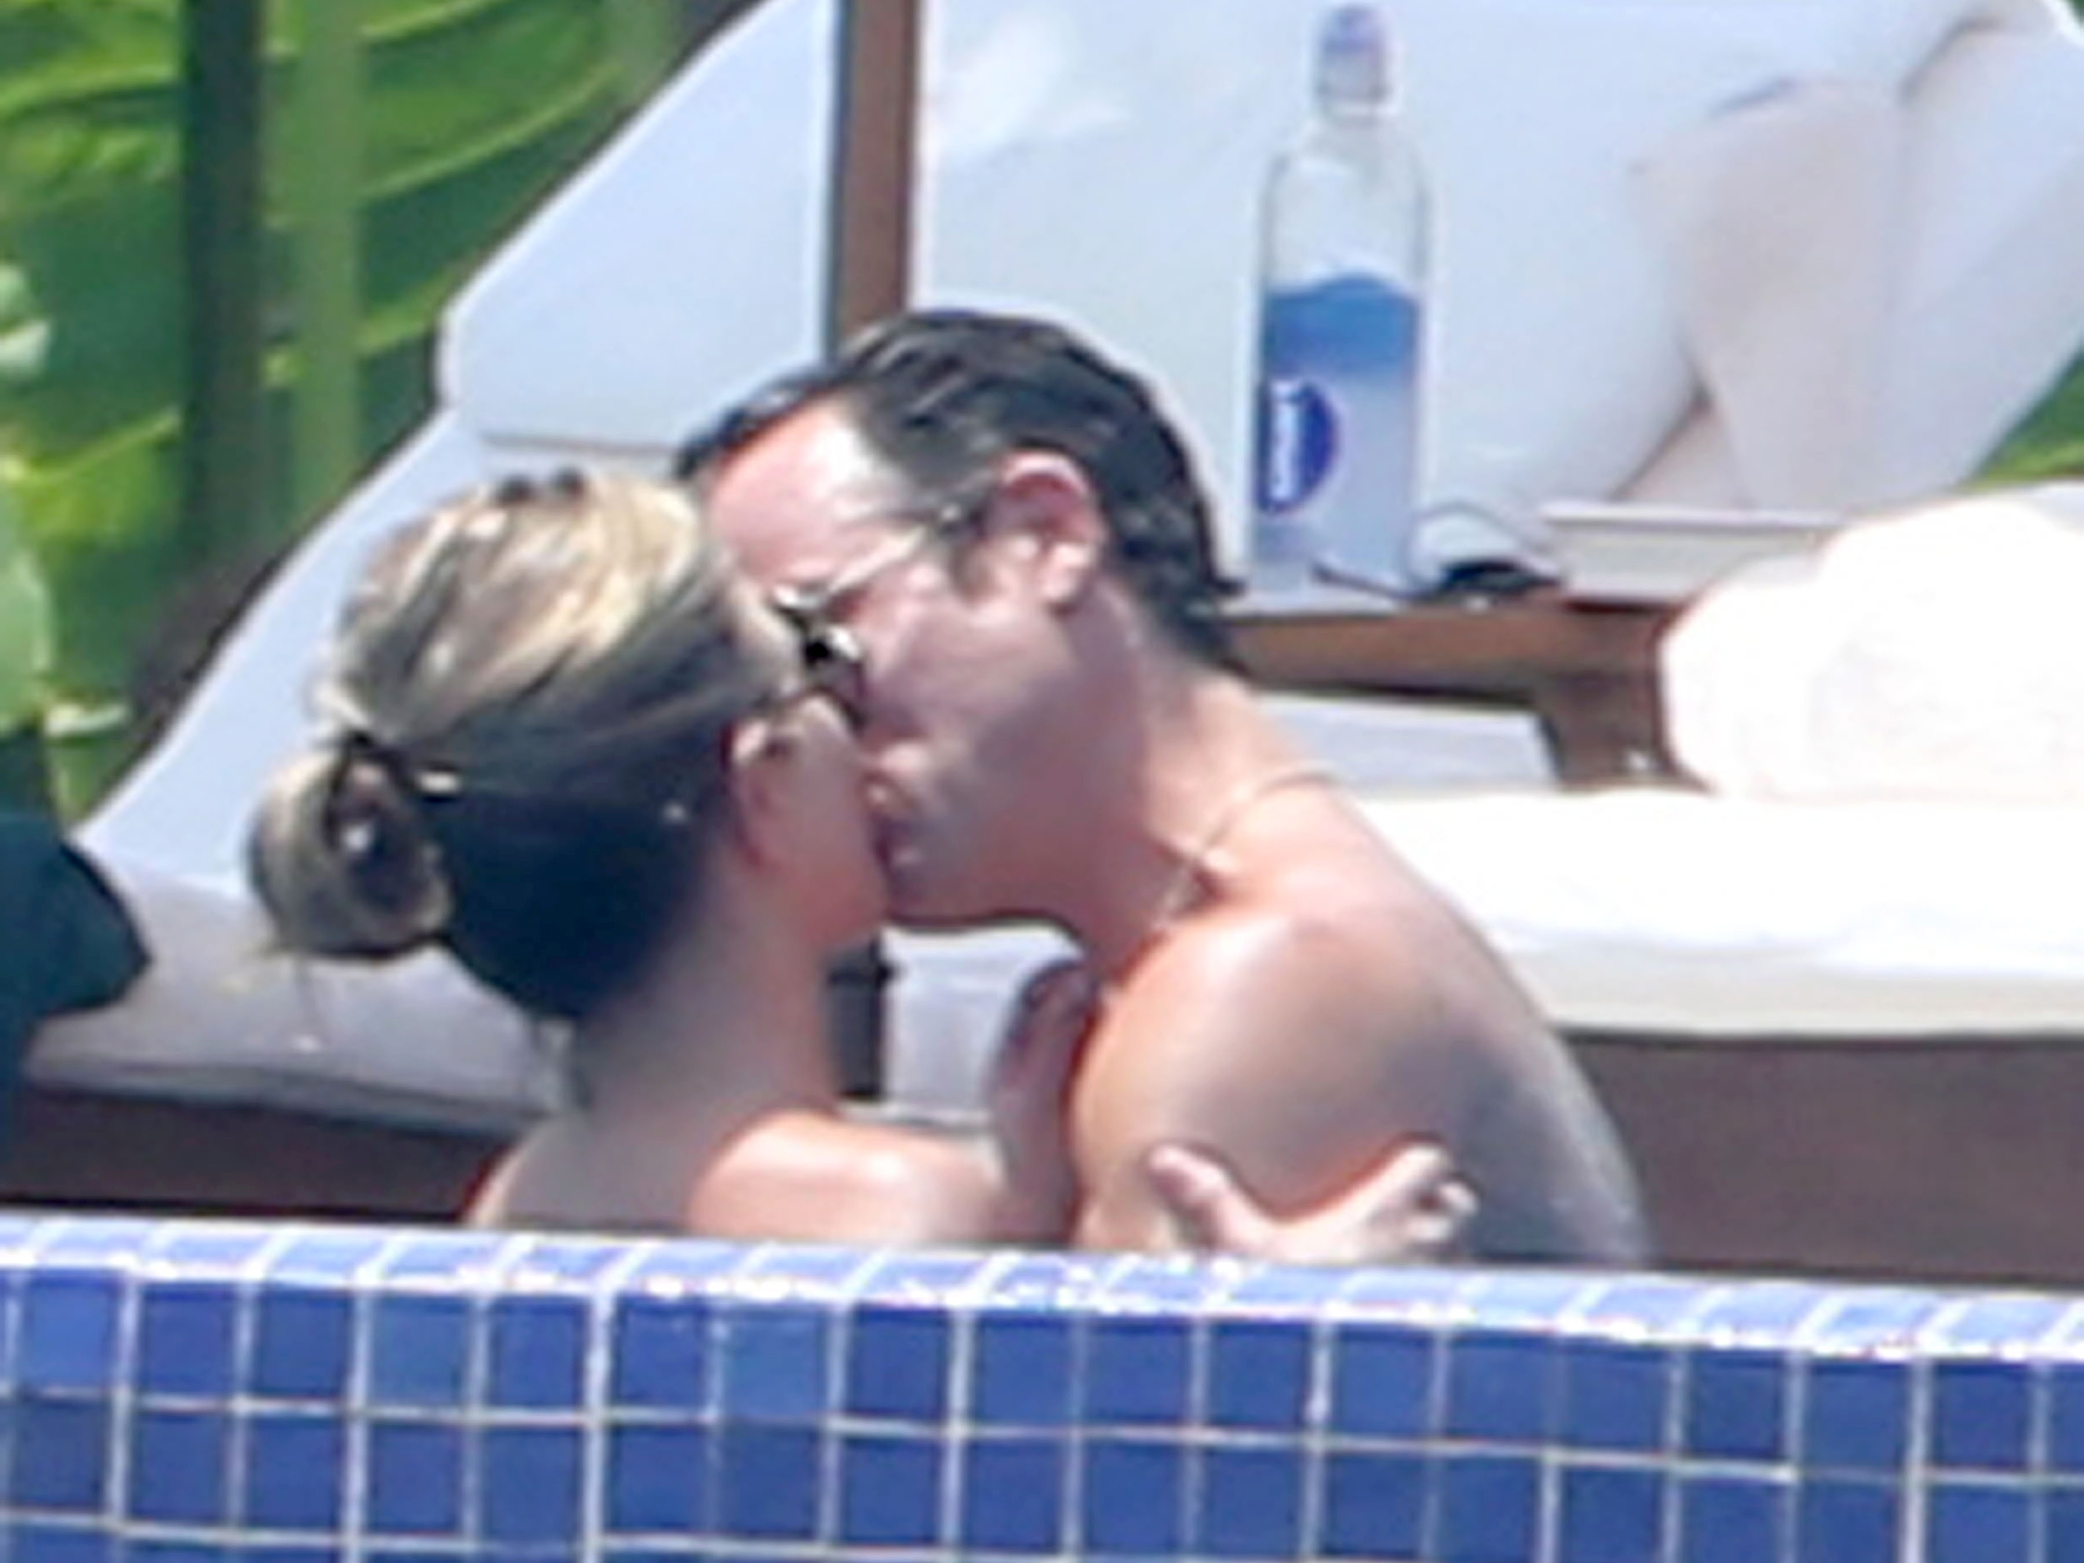 Aniston and her fiancé, Justin Theroux, kiss in the pool (FameFlynet)